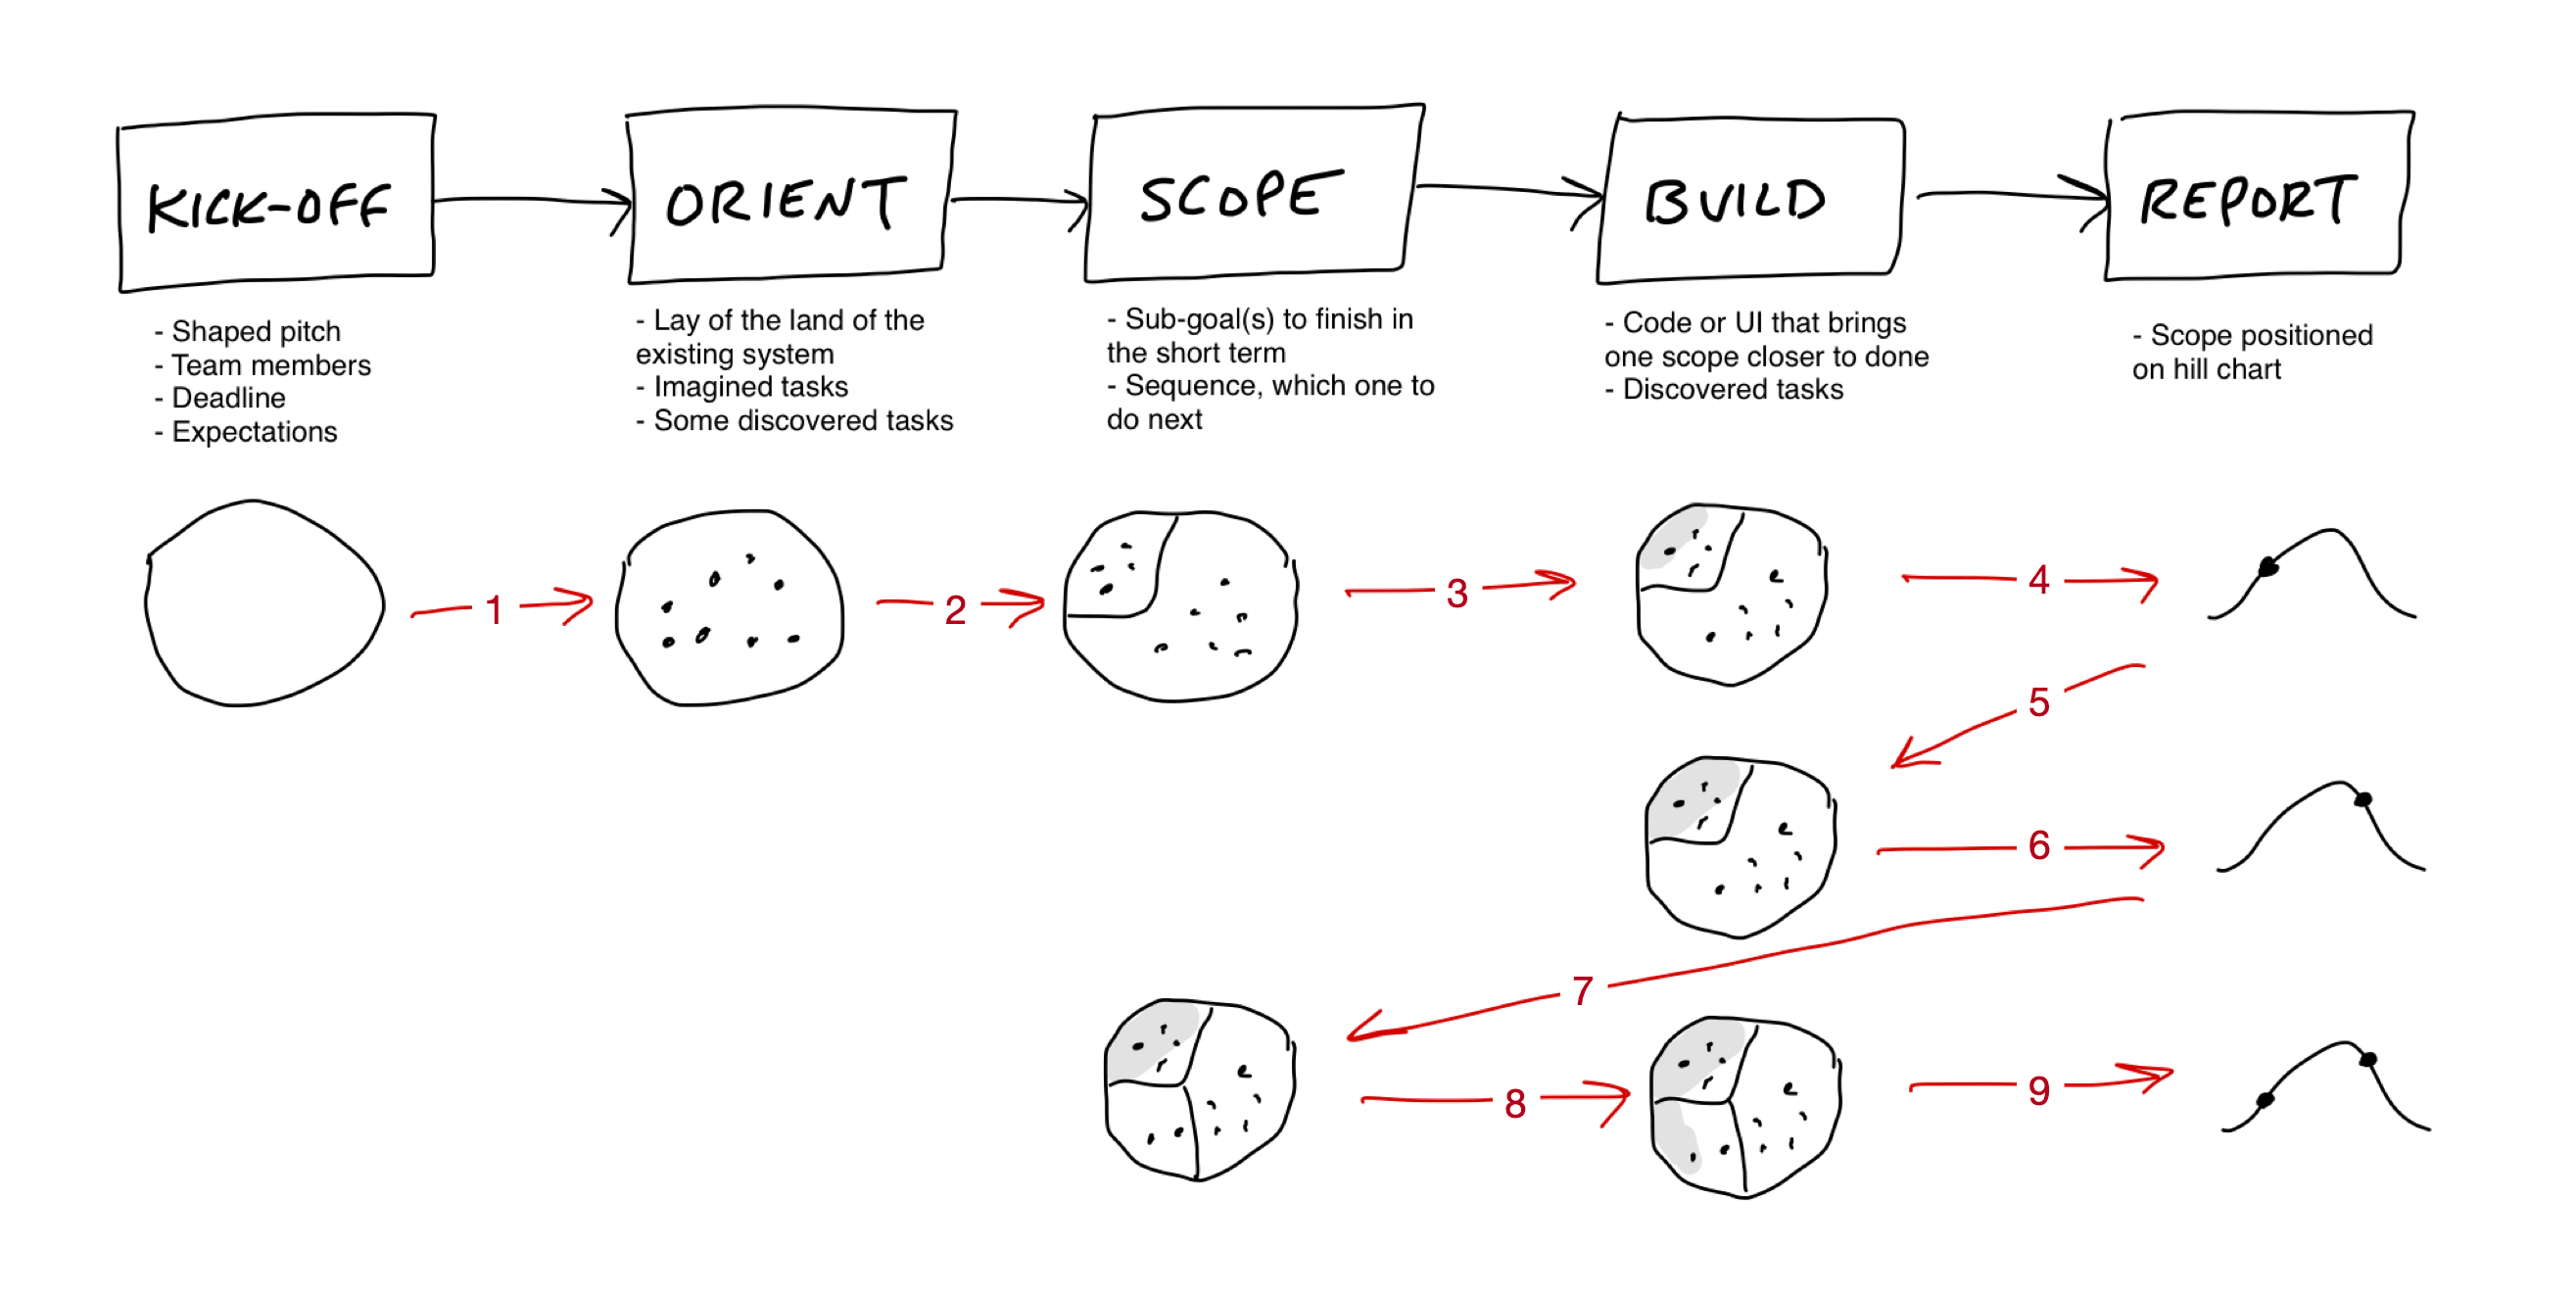 Diagram depicting how work looks over repeated application of the five main steps: Kick-Off, Orient, Scope, Build, and Report. At kickoff the map is an empty enclosure. At orient it is filled with dots. At scope one area is marked off inside the map. At build the area is partly shaded indicating completion. At report a dot moves up the left side of the hill. Back to build, the region is shaded further. At report again the dot moves over the hill. Back to scope, a new boundary is drawn in the map. At build, the second region is partially shaded. At report, a new dot appears on the hill for the new region at the lower left.